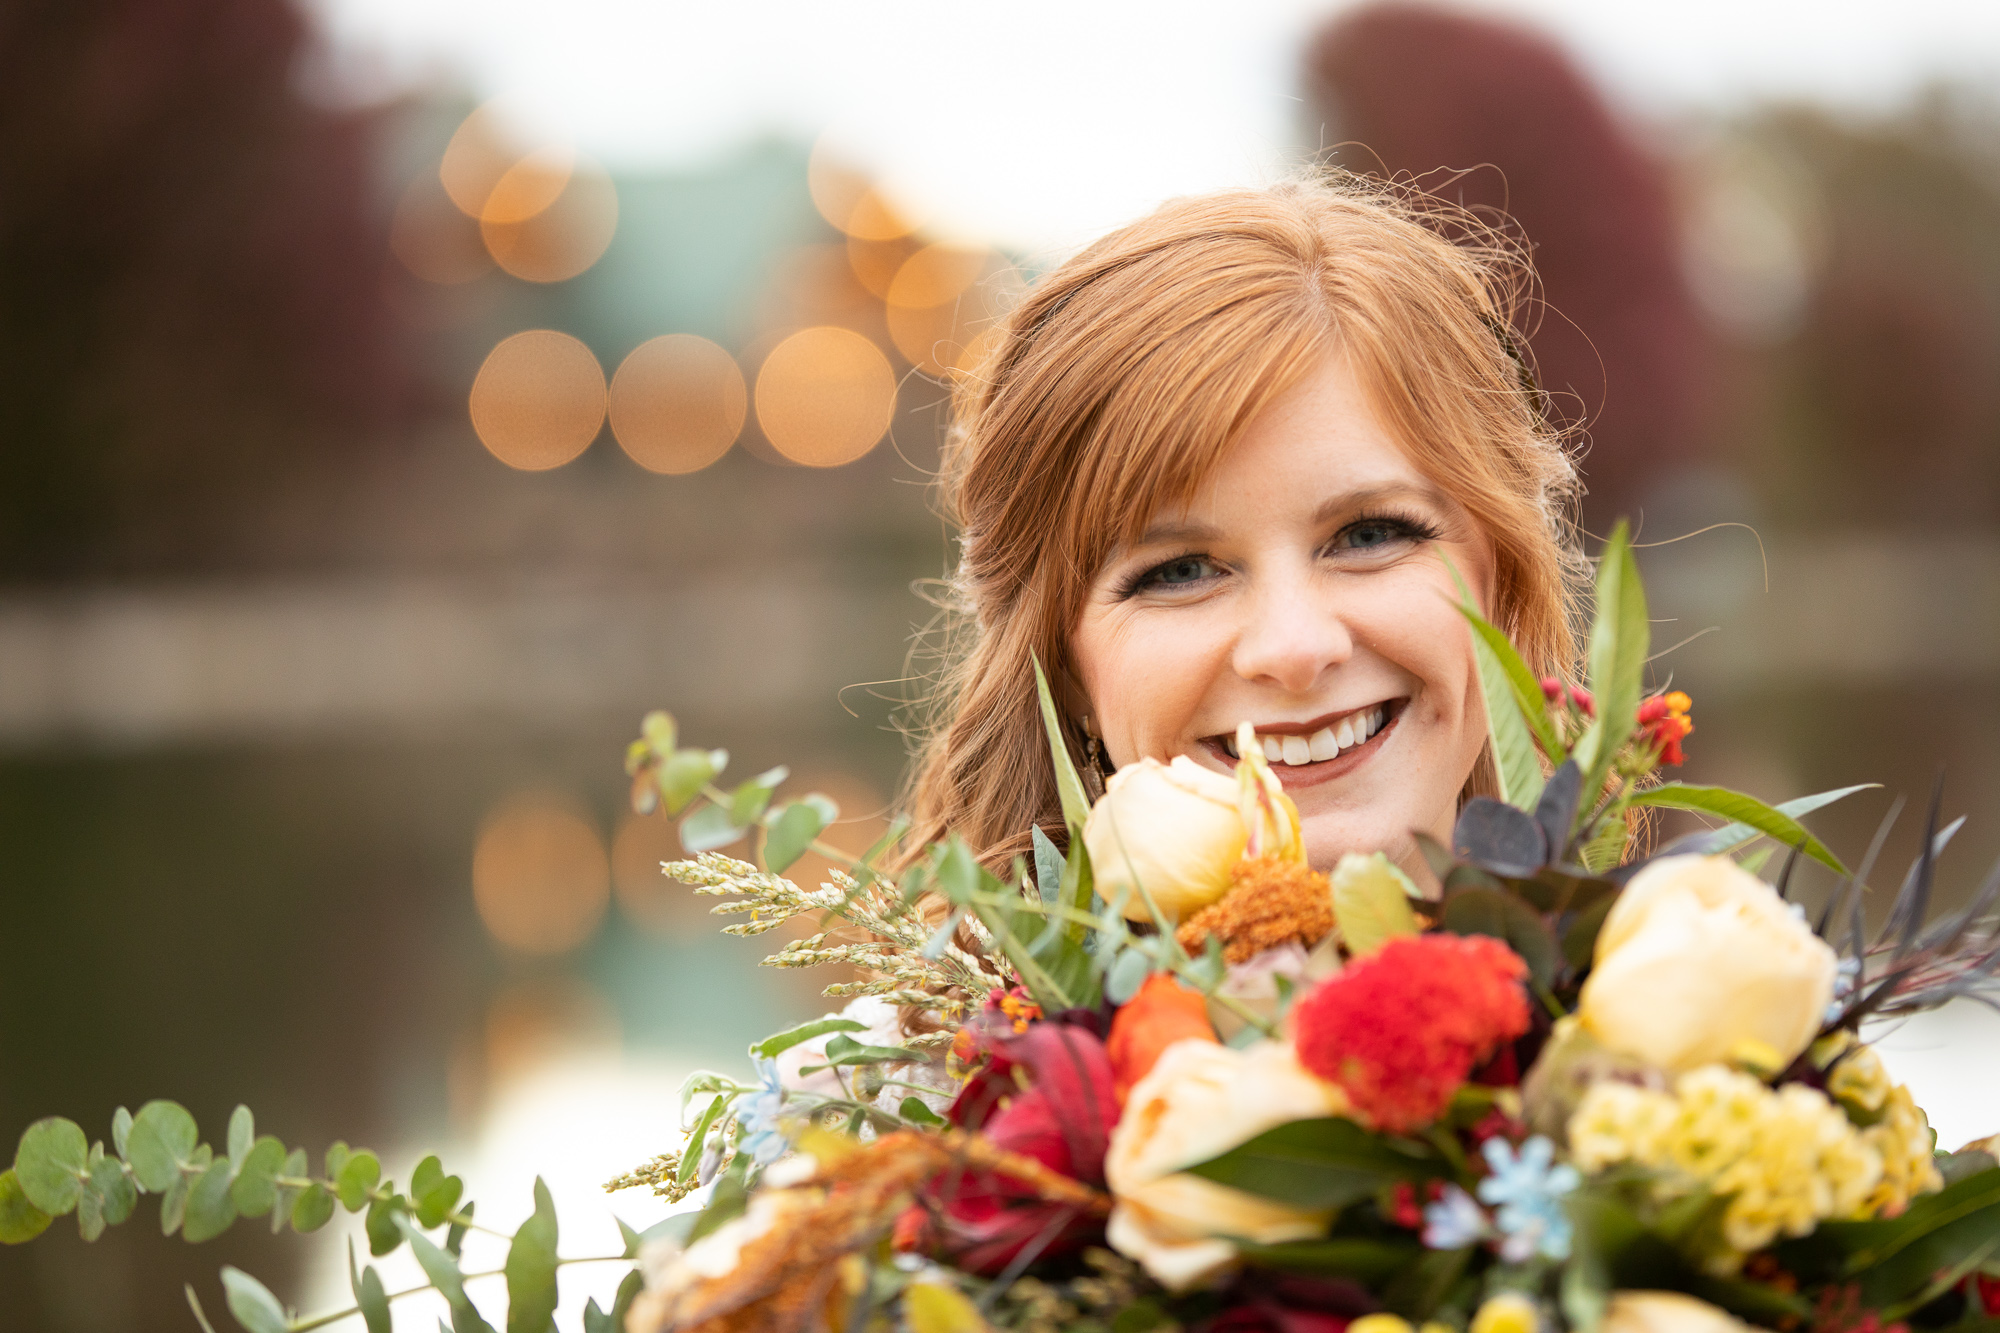 Bridal bouquet by Posies by Pattie at The Gathering Place at autumn wedding styled shoot.